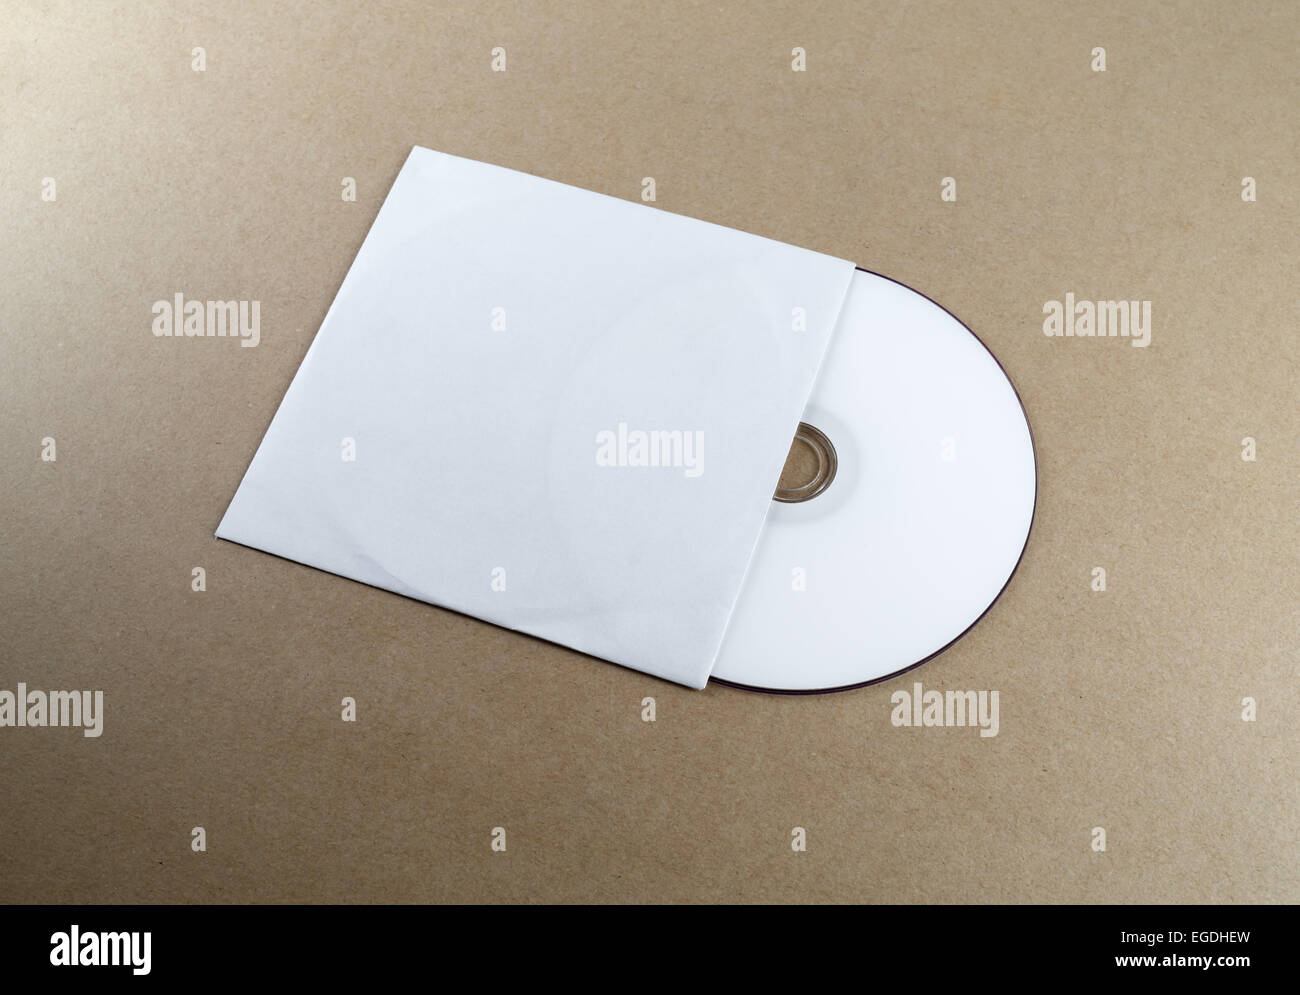 Blank Compact Disk On A Table. Template For Branding Identity For Designers.